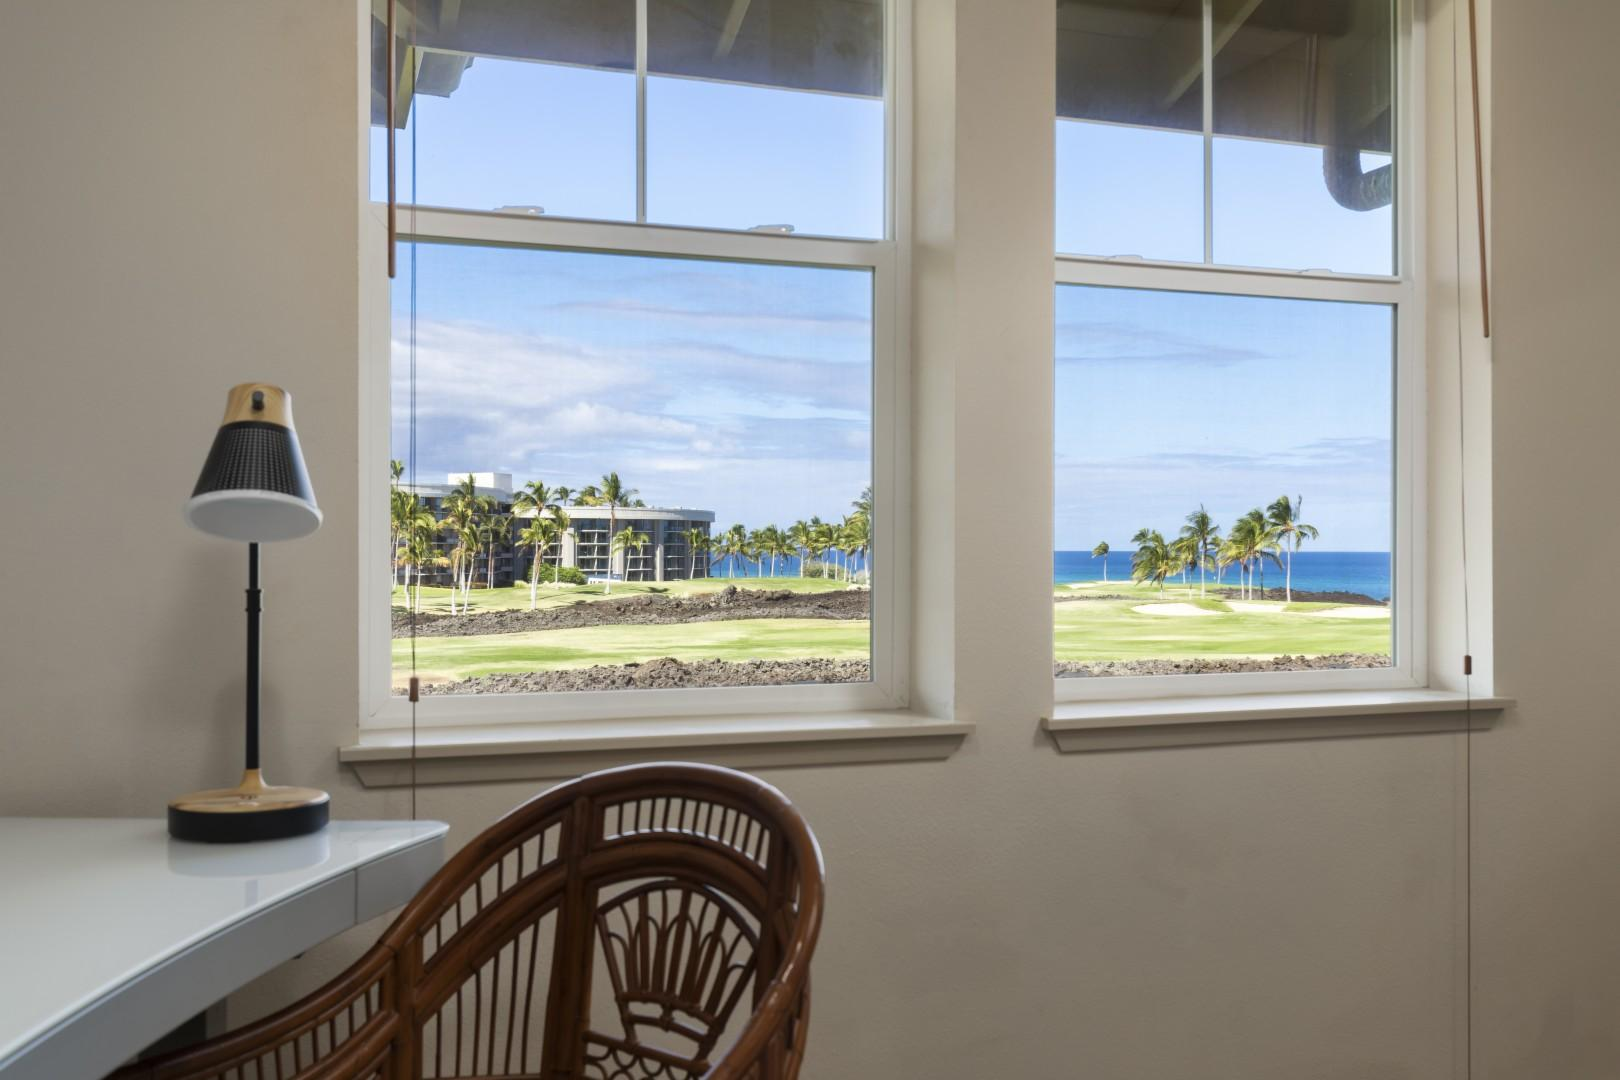 Enjoy writing postcards at the computer deak while gazing out at the ocean.